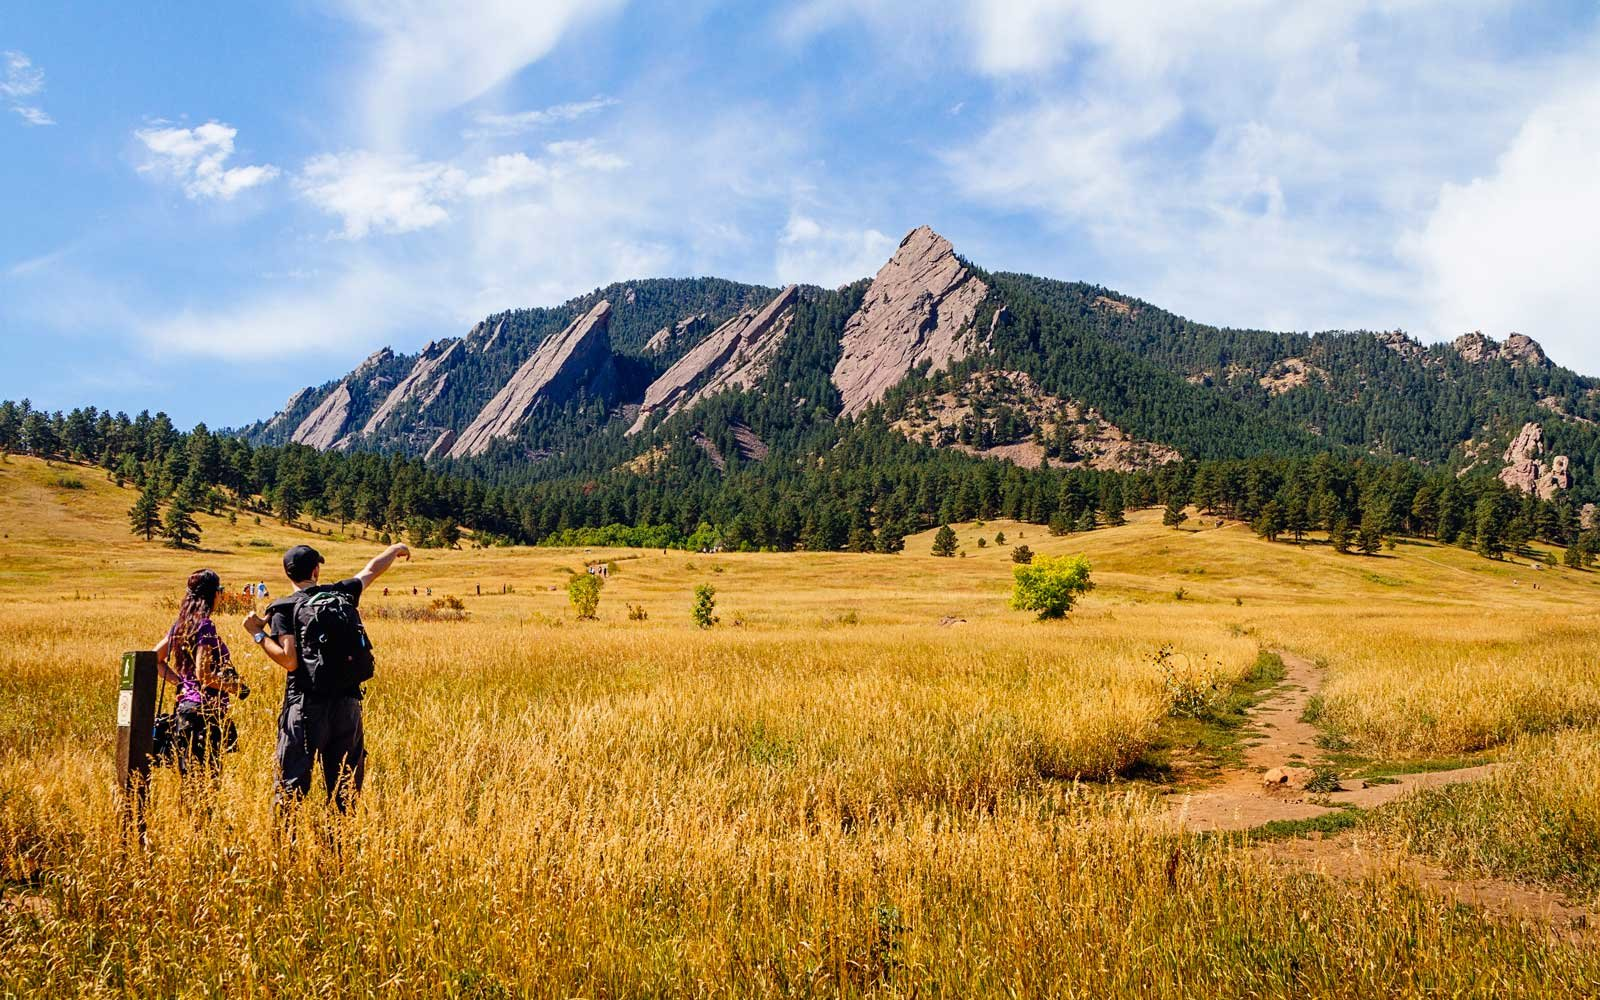 Hiking in the Flatirons